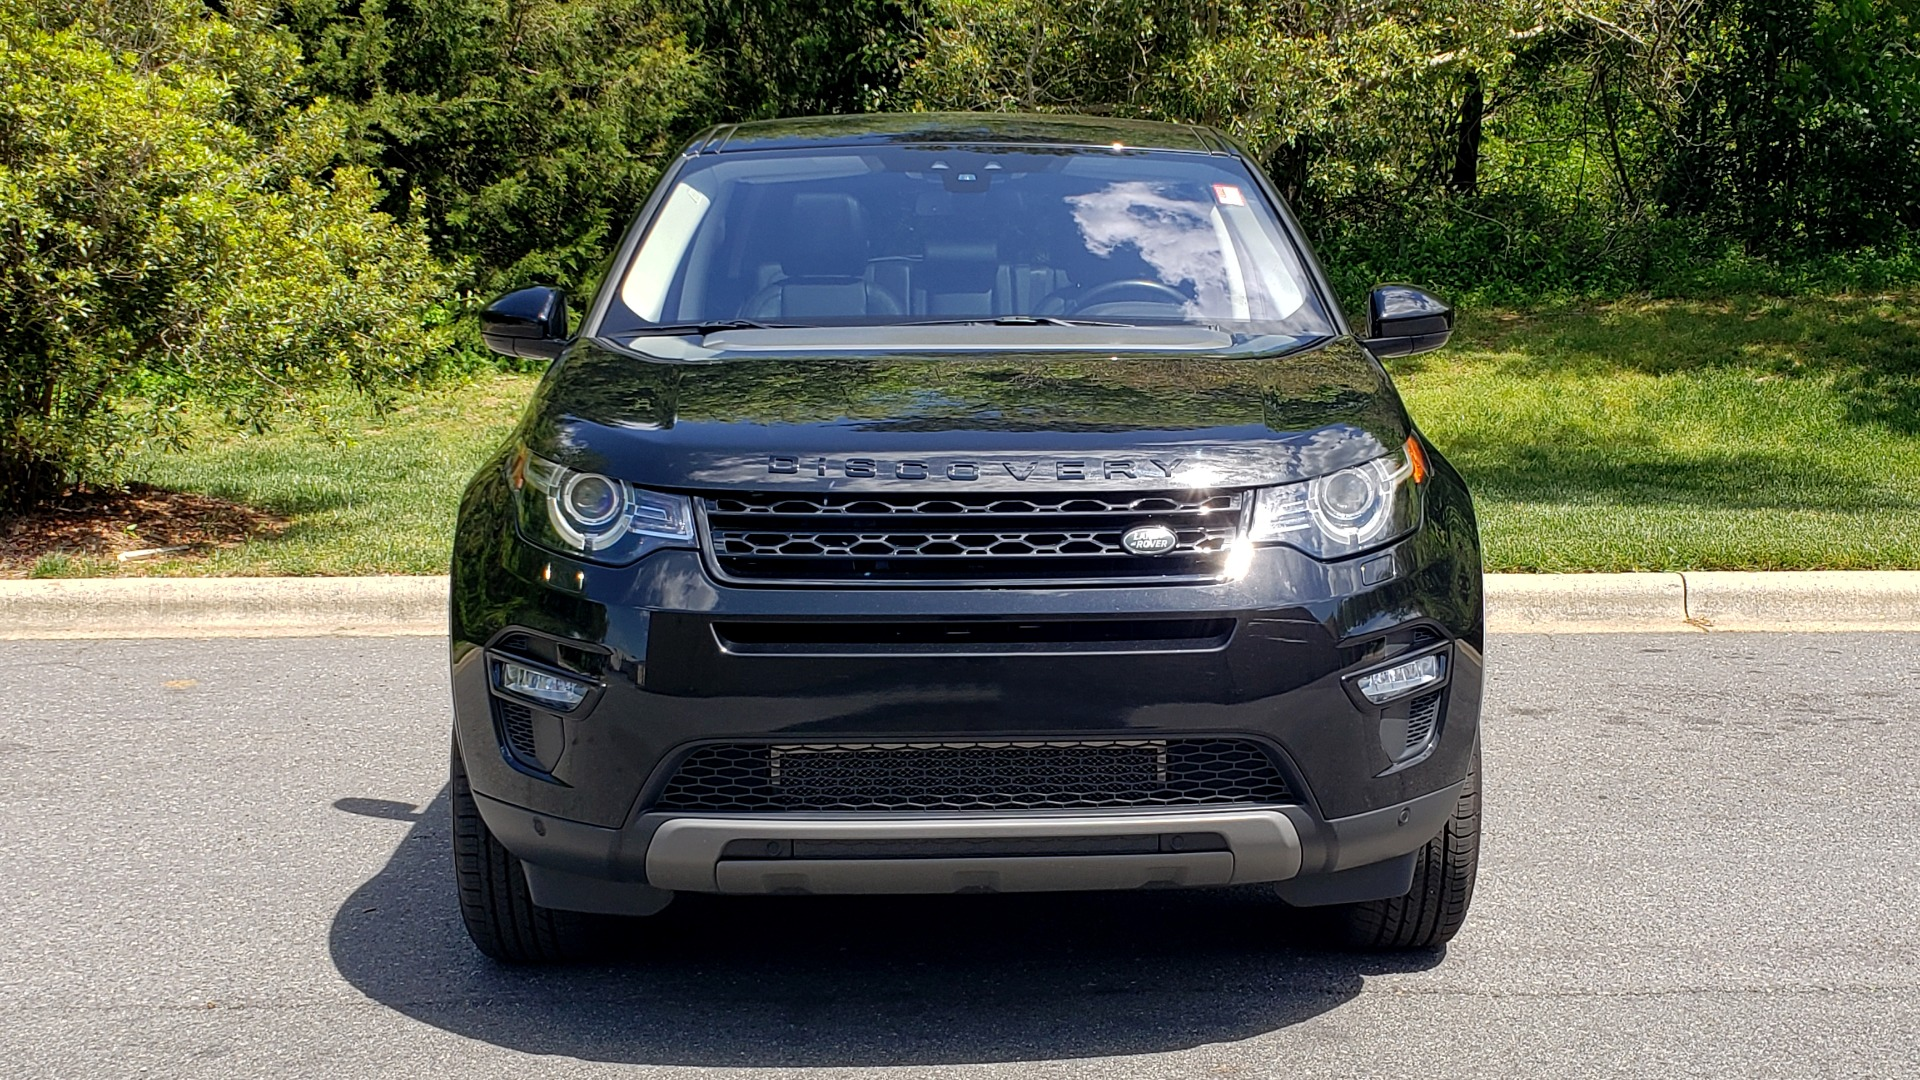 Used 2017 Land Rover DISCOVERY SPORT HSE / NAV / PANO-ROOF / REARVIEW / HTD STS / LANE DEPART for sale Sold at Formula Imports in Charlotte NC 28227 22